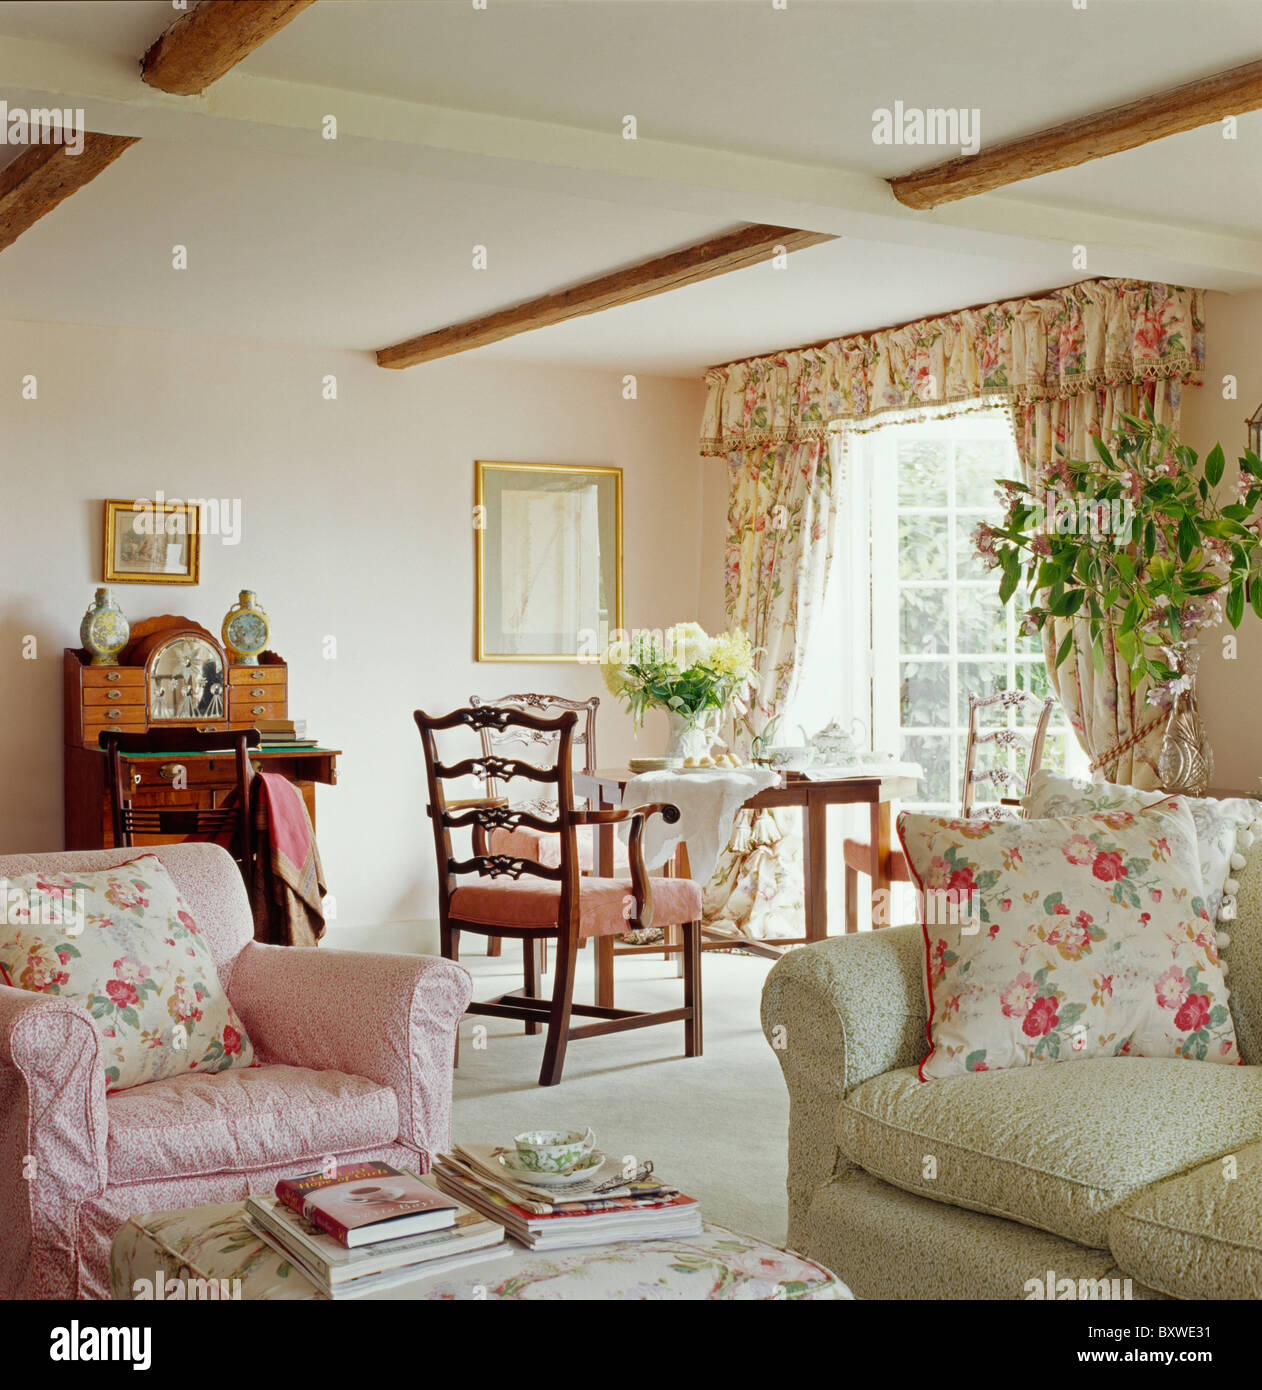 boring pin just couch sofas makes comprised i sofa different fabrics adore so cottage it cottages floral m comparison monotoned by getting the ones of